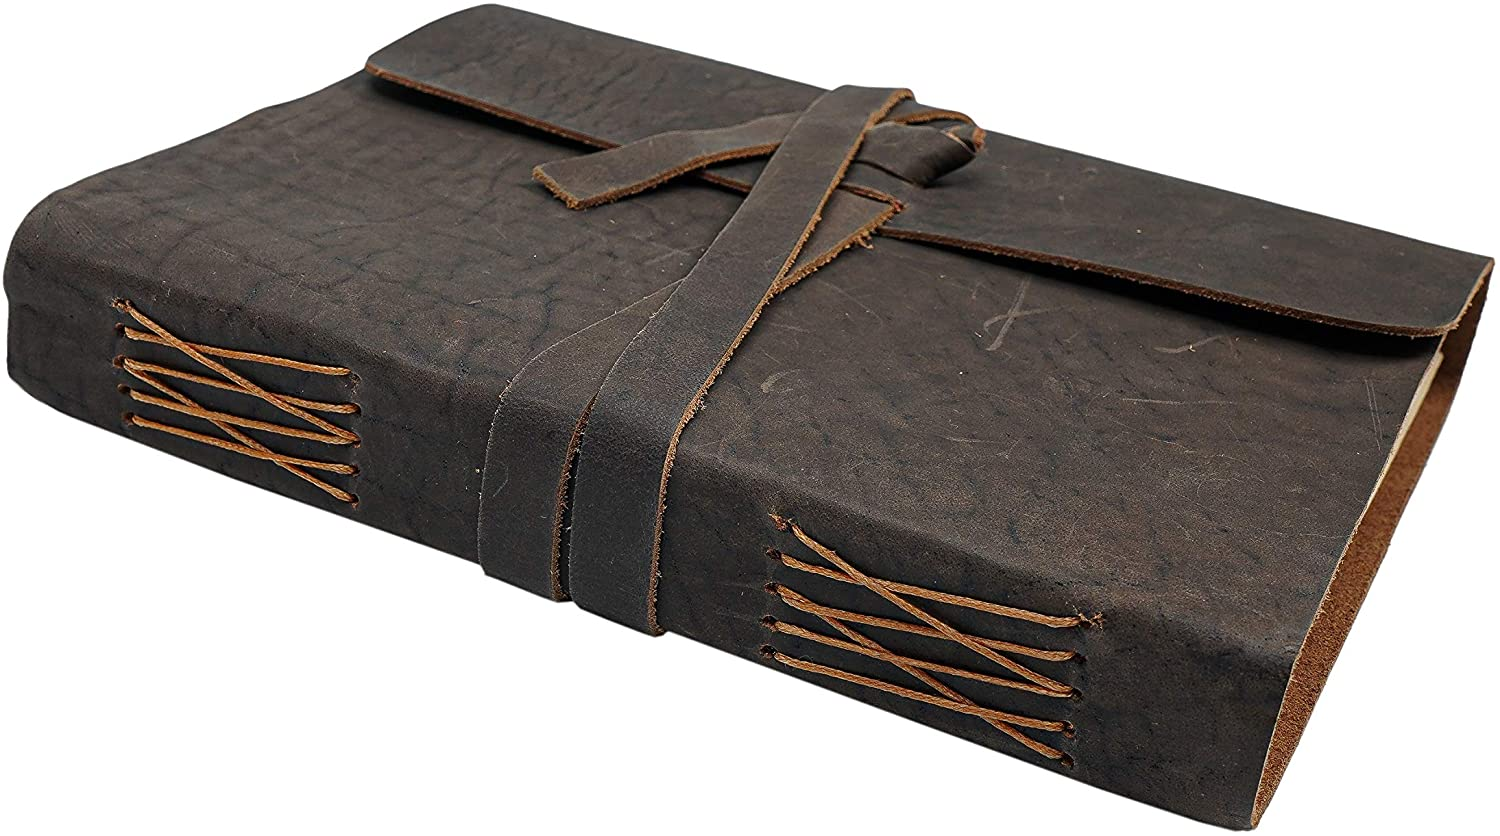 Leather Journal Unlined Paper- Handmade Leather Bound Writing Notebook (6x8 in), Leather Journal for Men & Women, Poetry Journal, Lined Journal Notebooks & Journals to Write in for Women, Mens